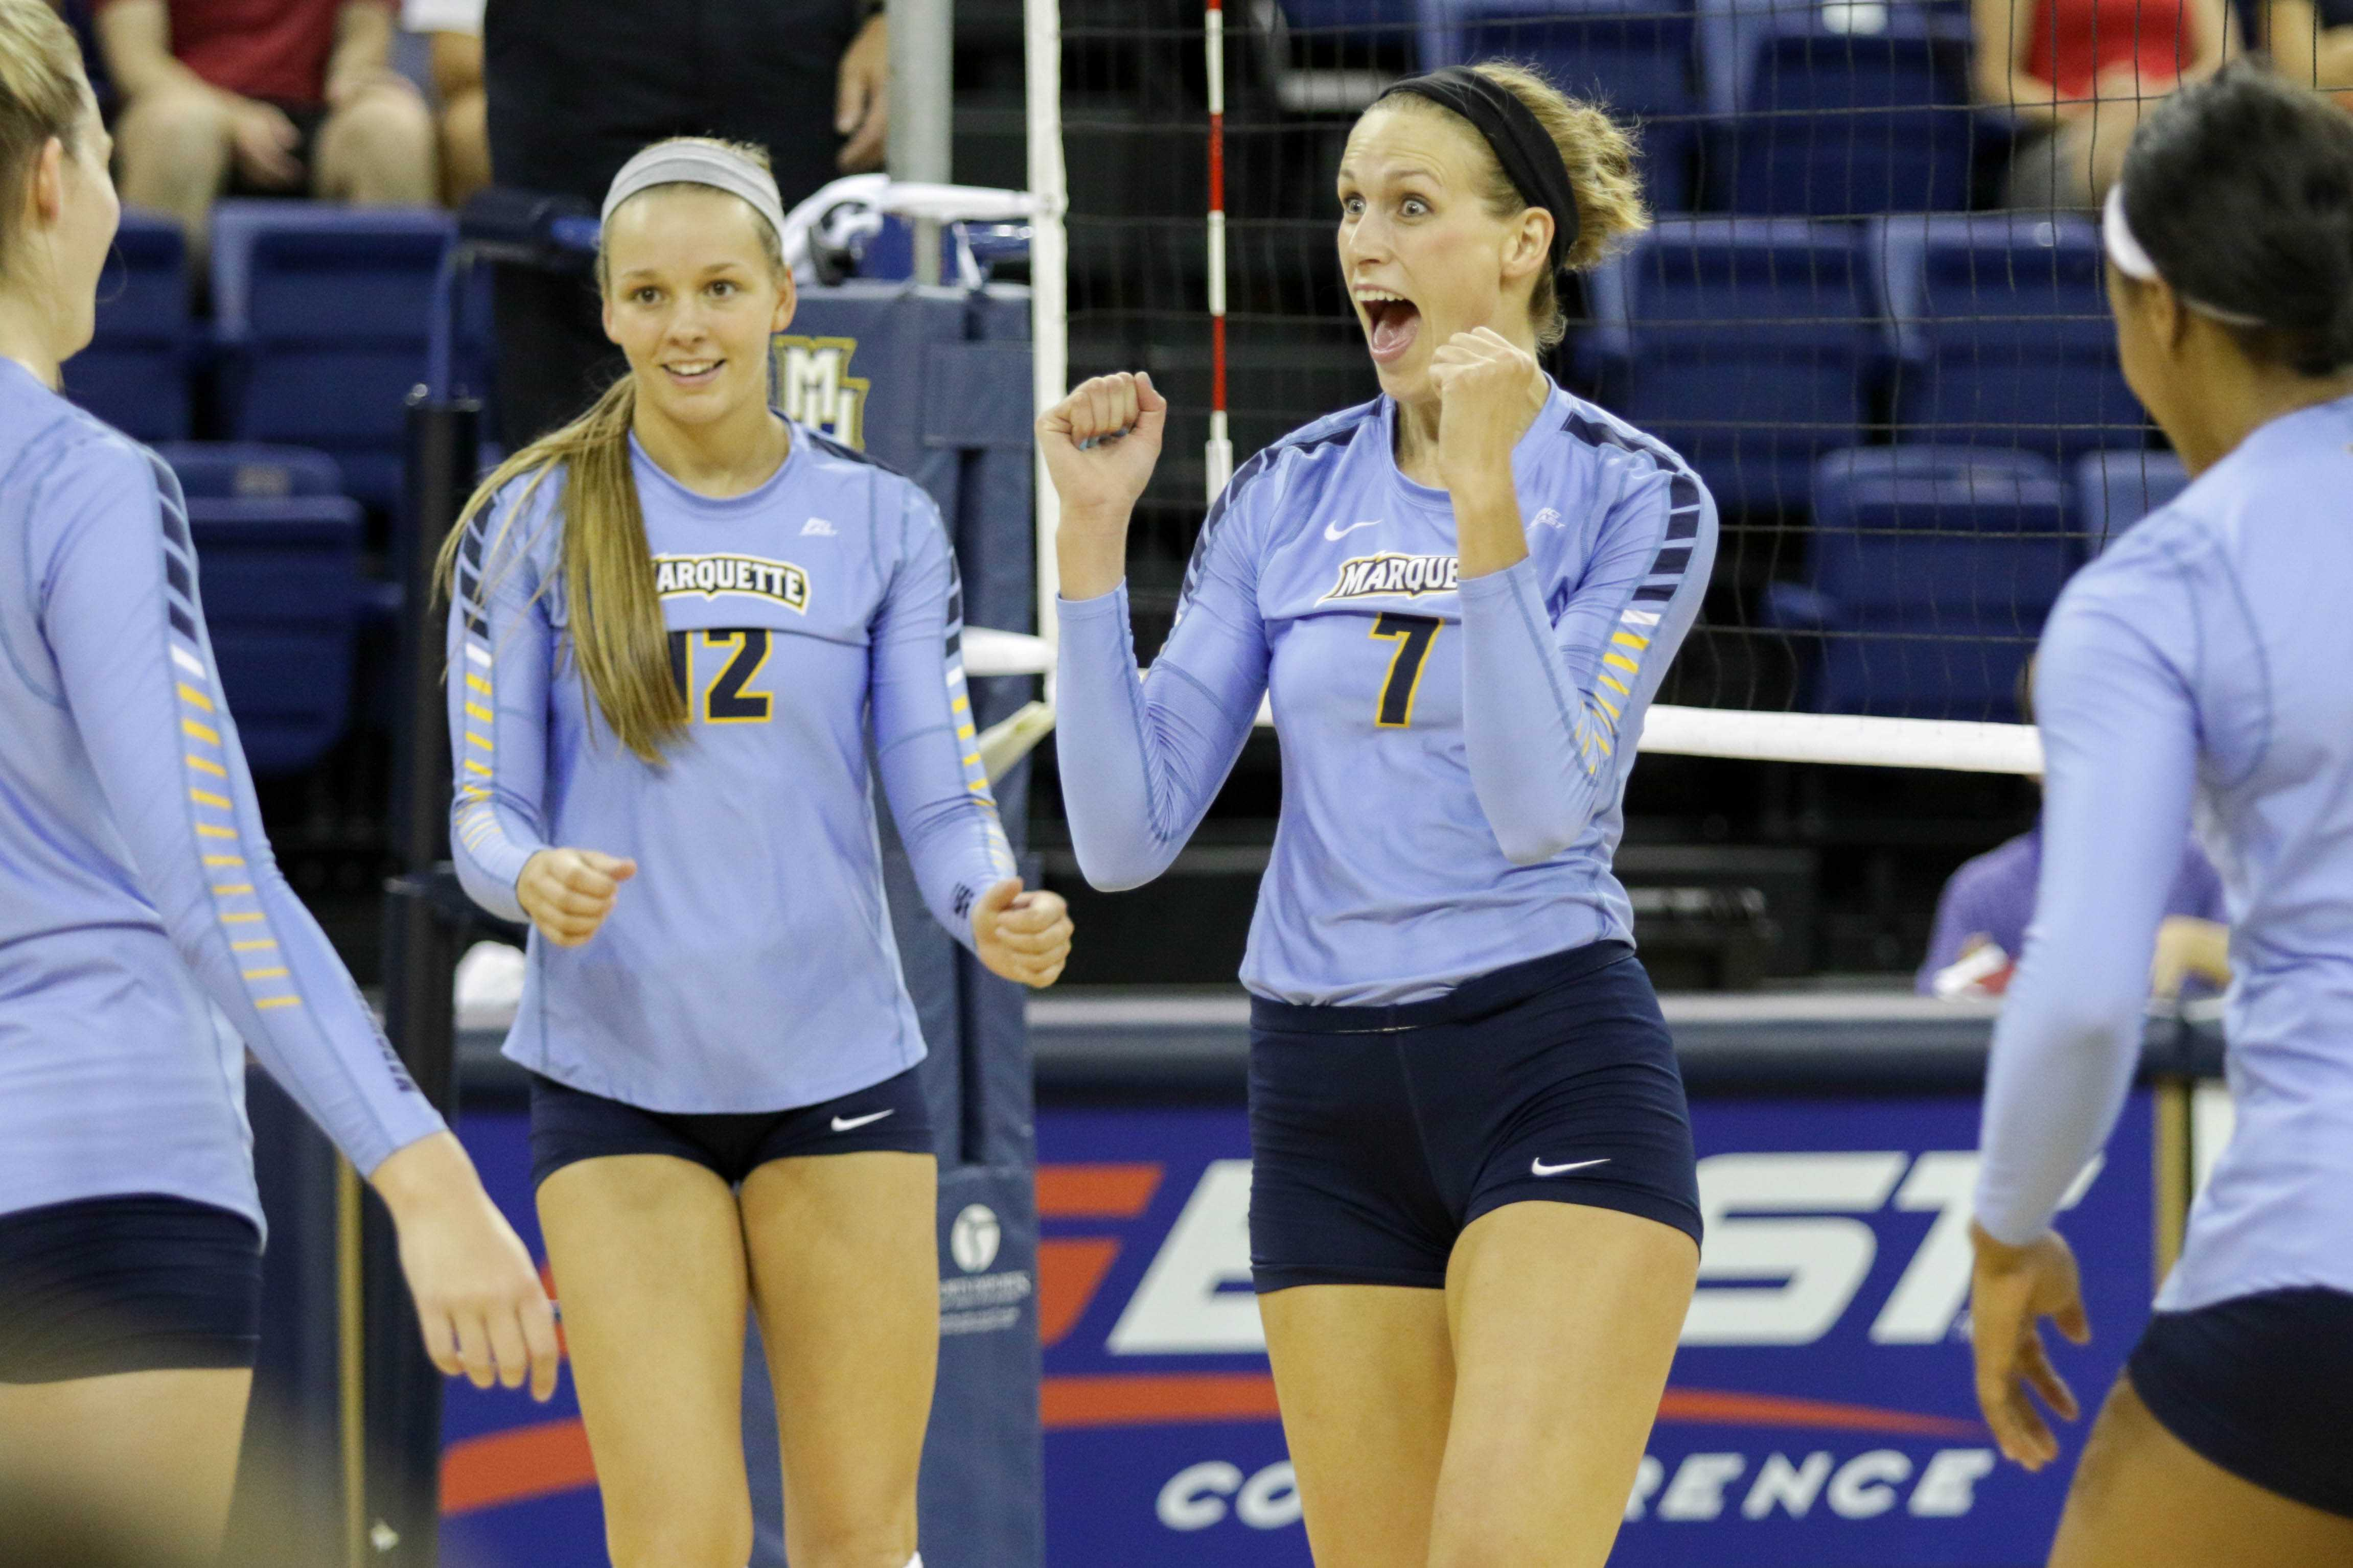 Marquette volleyball has the second-most wins in the BIG EAST.